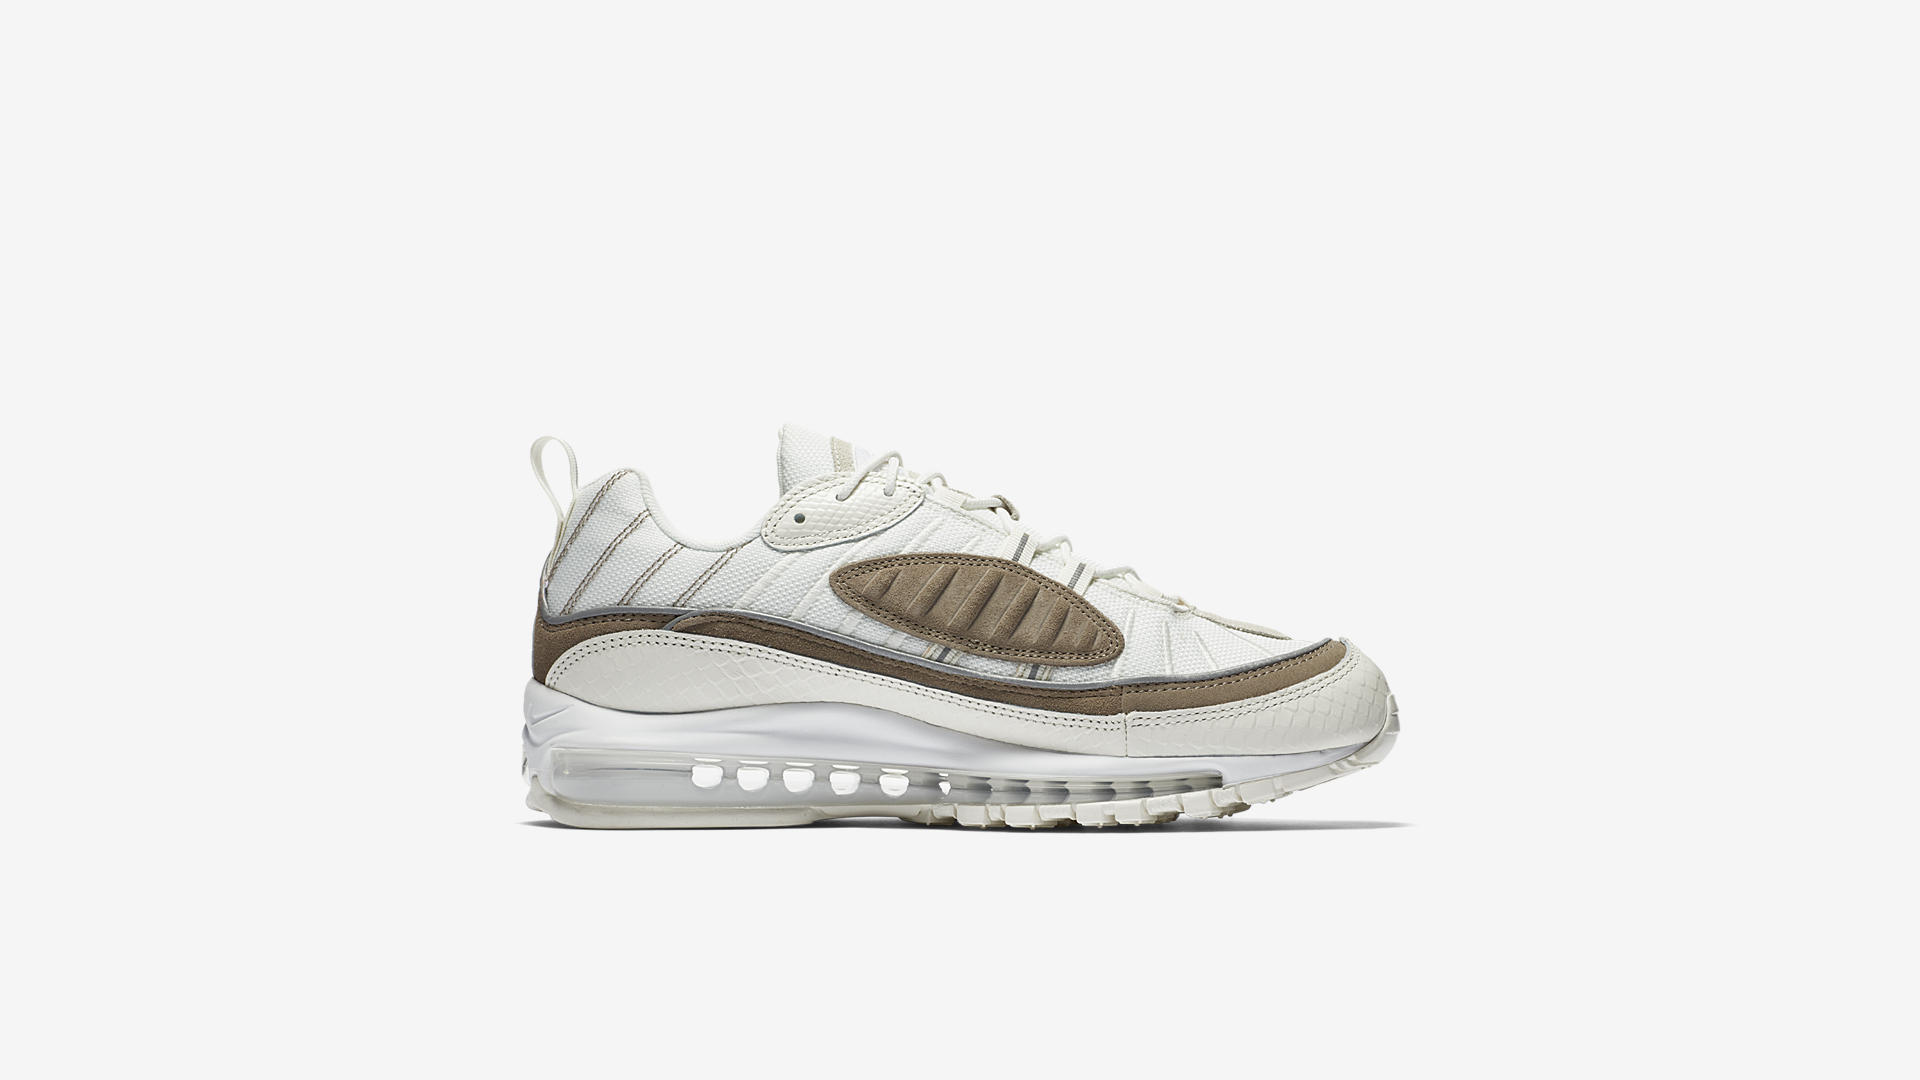 AO9380 100 Nike Air Max 98 Sail Cream 4